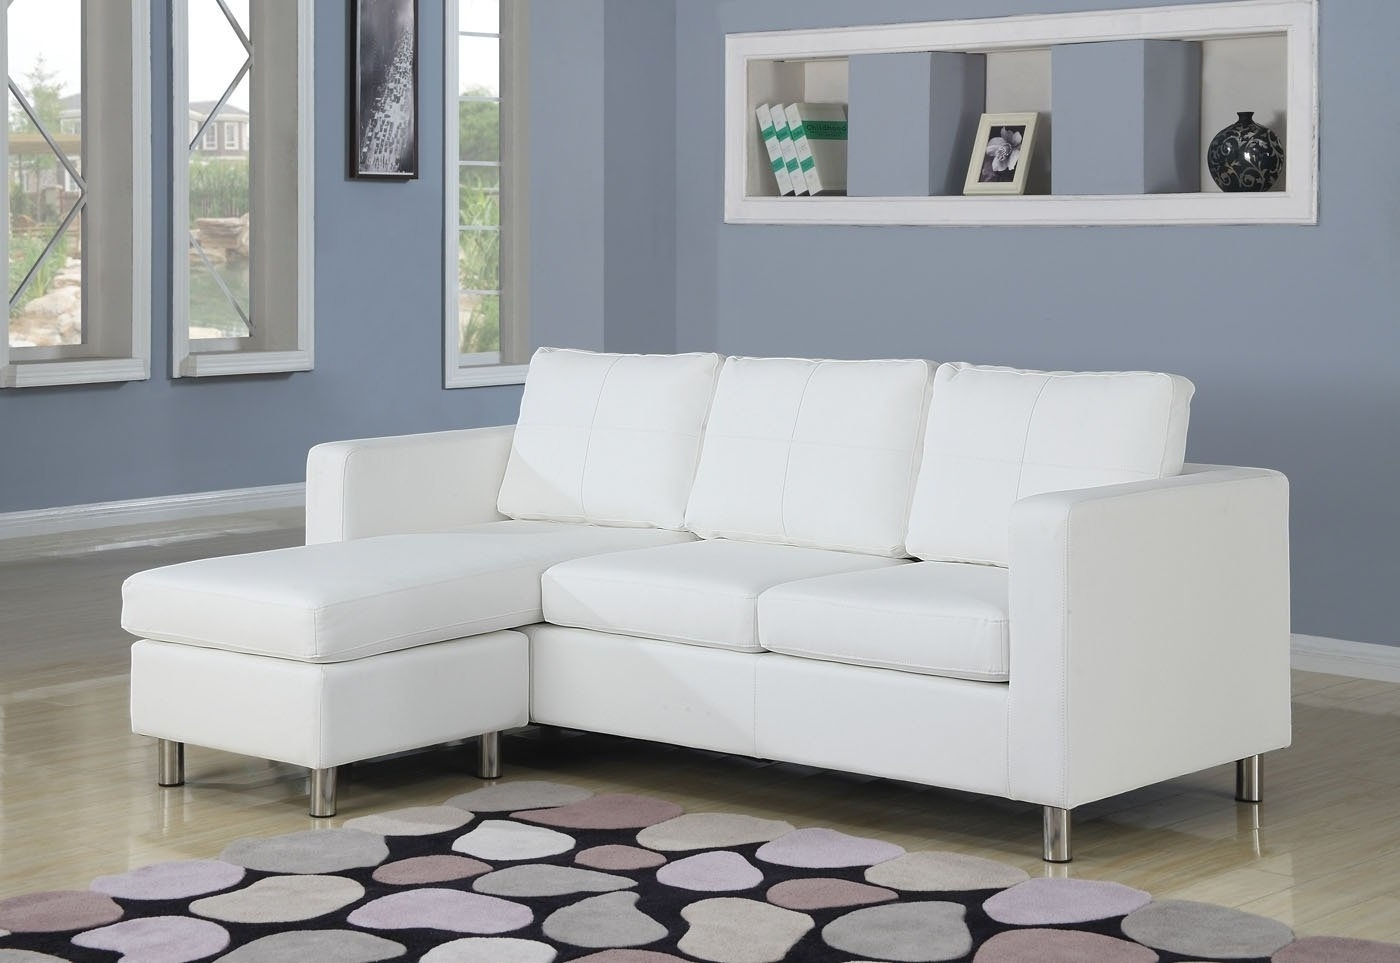 Apartment Sectional Sofas With Chaise With Preferred Sofa : Chaise Sofa Double Chaise Sectional Leather Apartment Size (View 7 of 20)